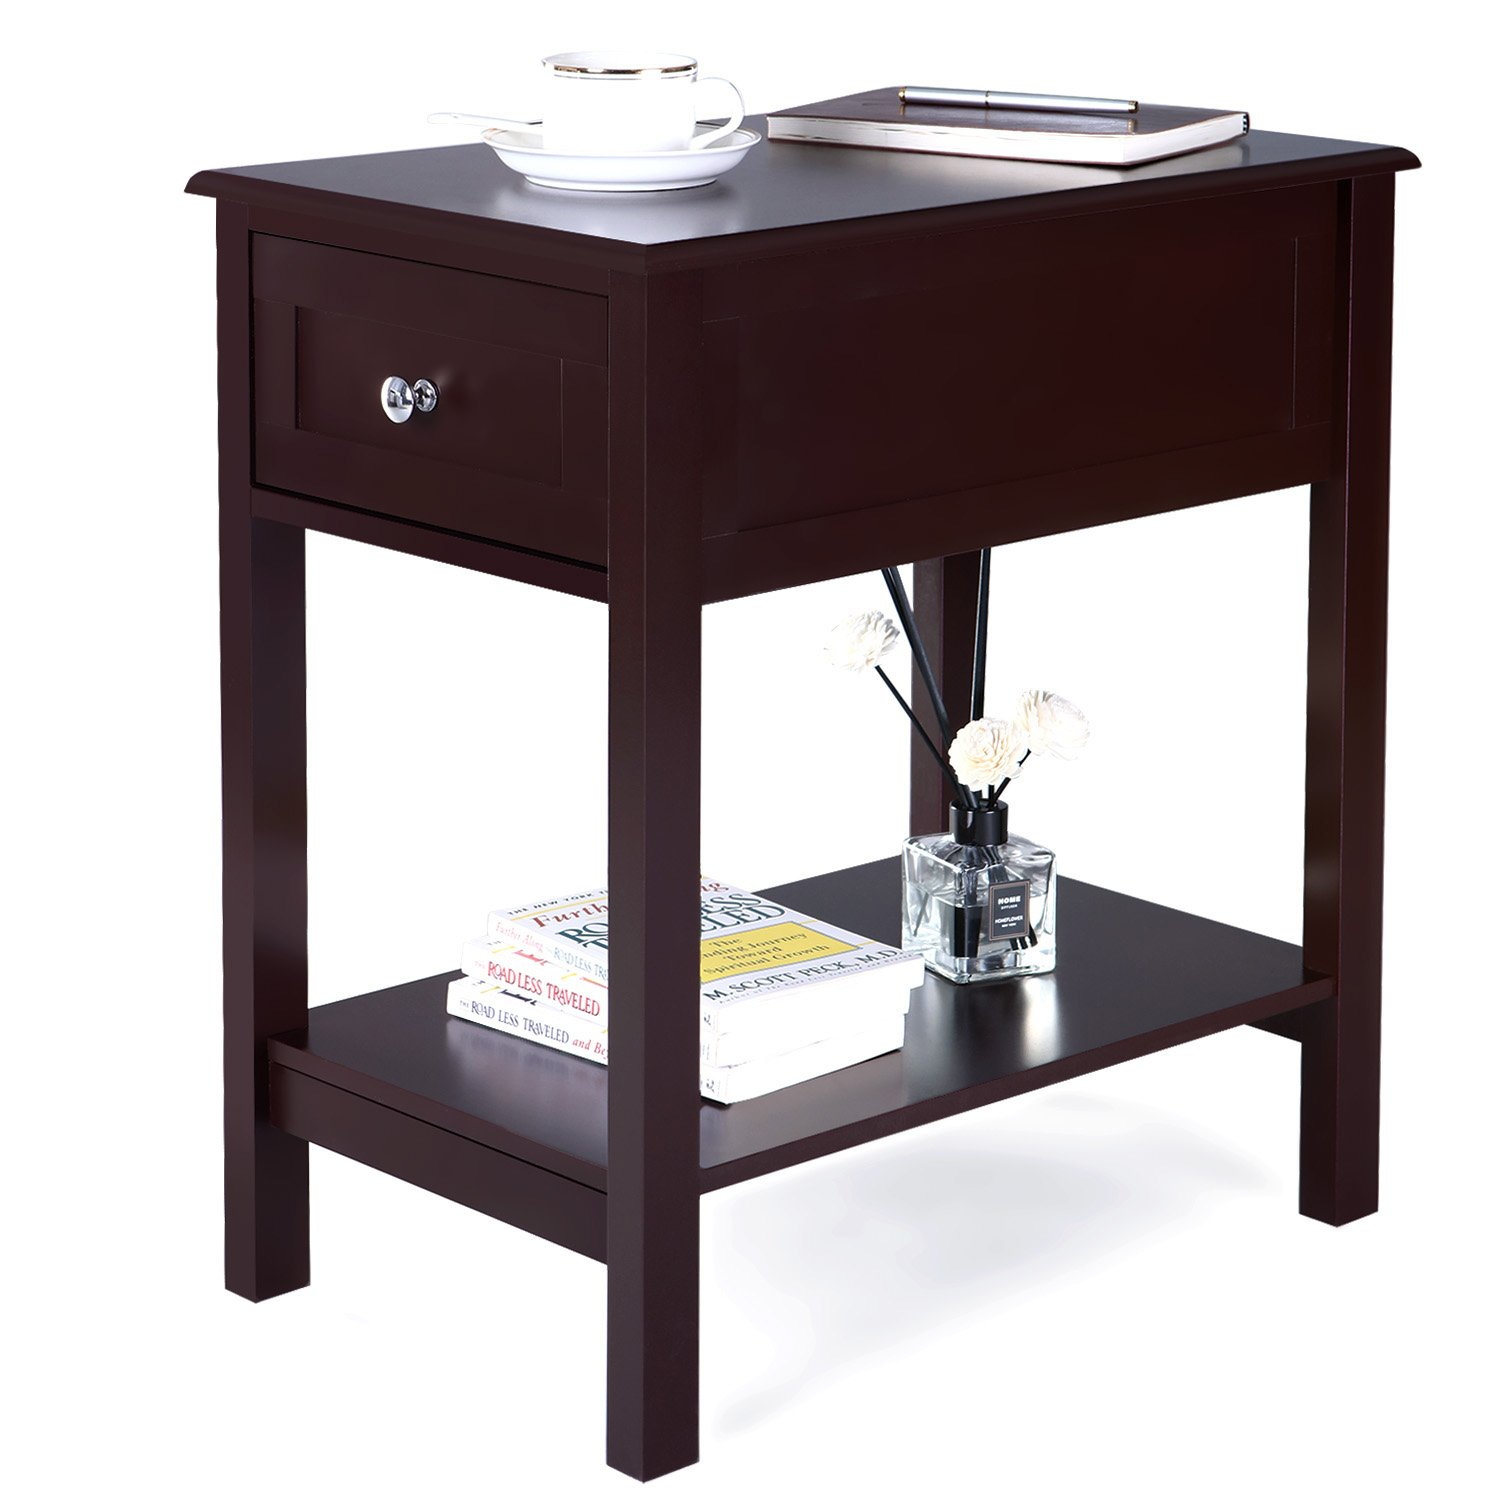 songmics narrow side table end night stand bedside accent with drawer sliding storage for kid room bedroom livingroom brown ott box ikea red patio target wine rack lamps and